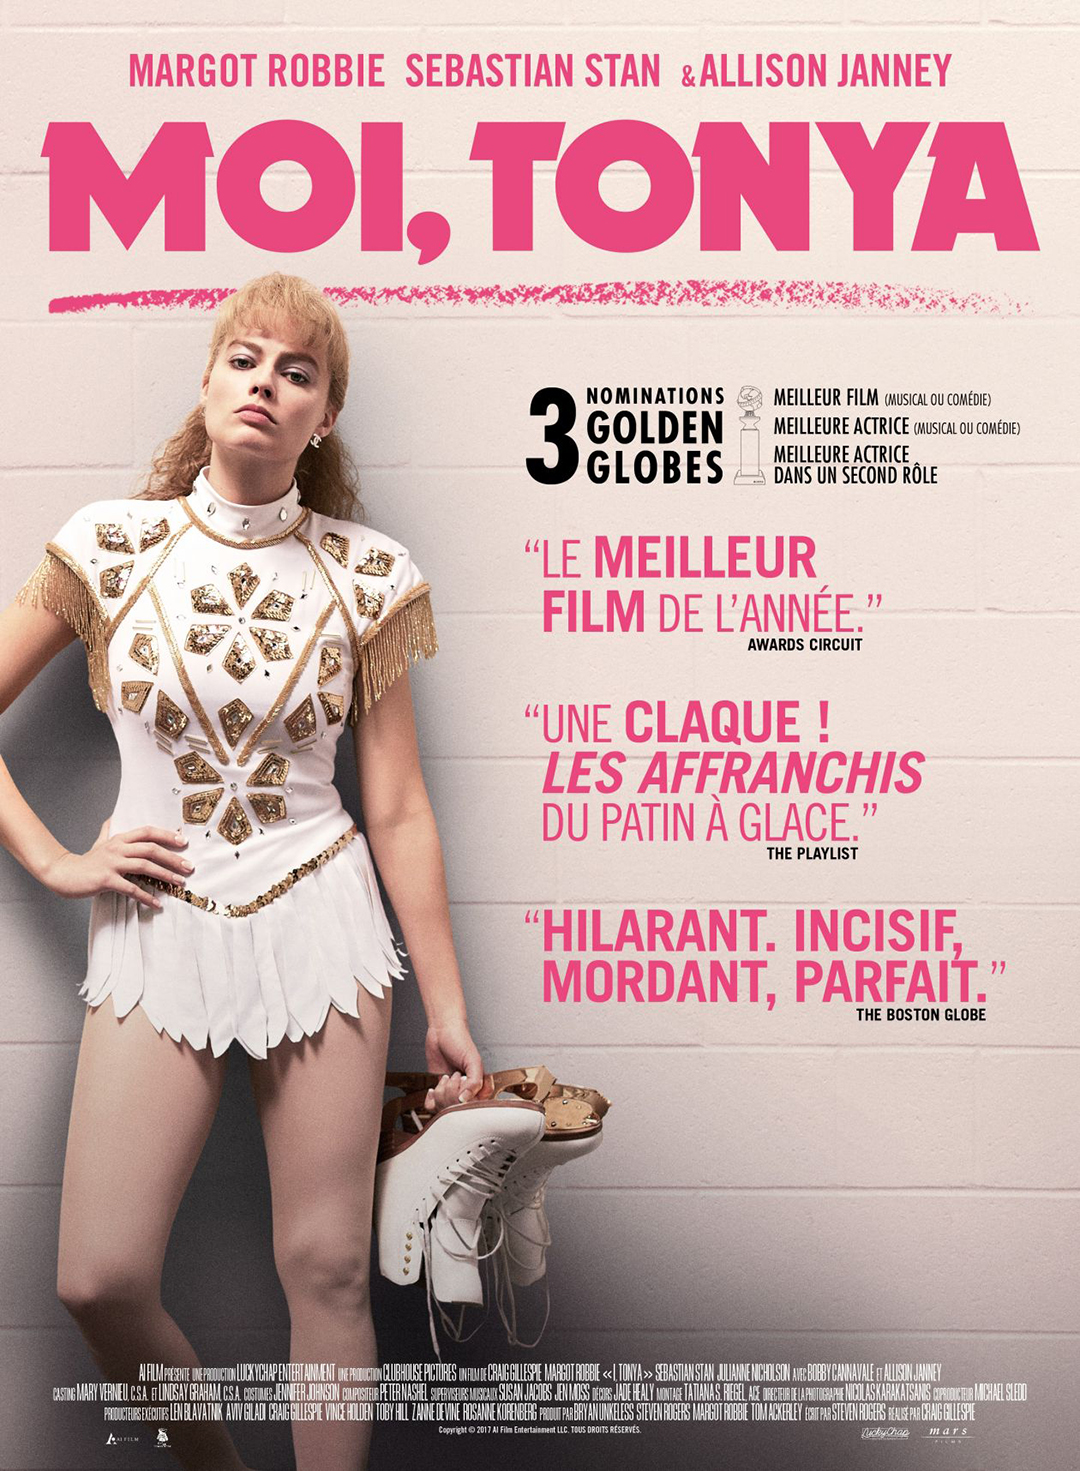 Blog-Mode-And-the-City-Lifestyle-Cinq-Petites-Choses-250-moi-tonya